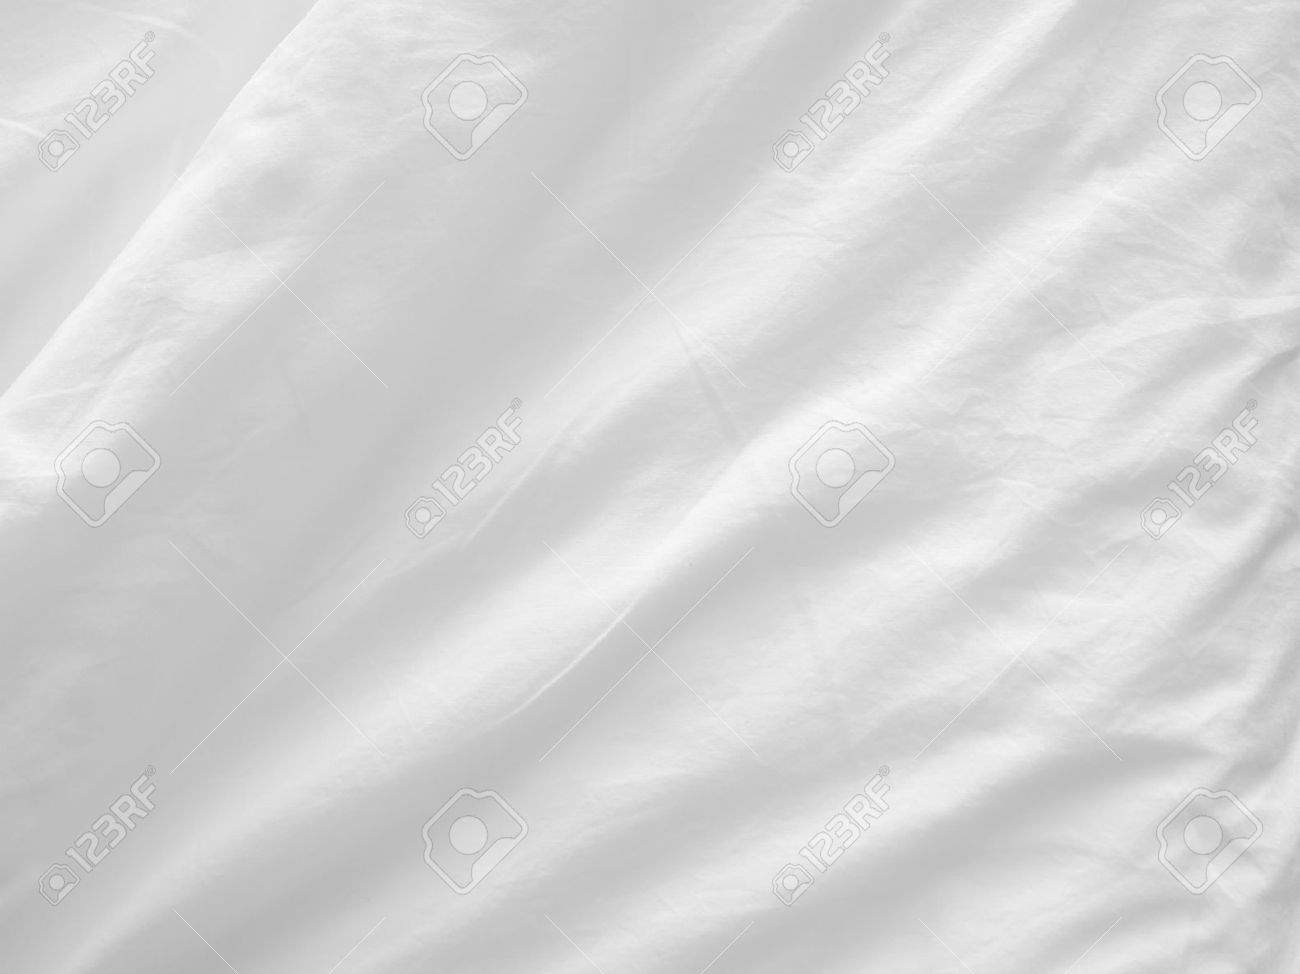 white bed sheet texture. Soft White Bed Sheets Background Stock Photo - 40007015 Sheet Texture E